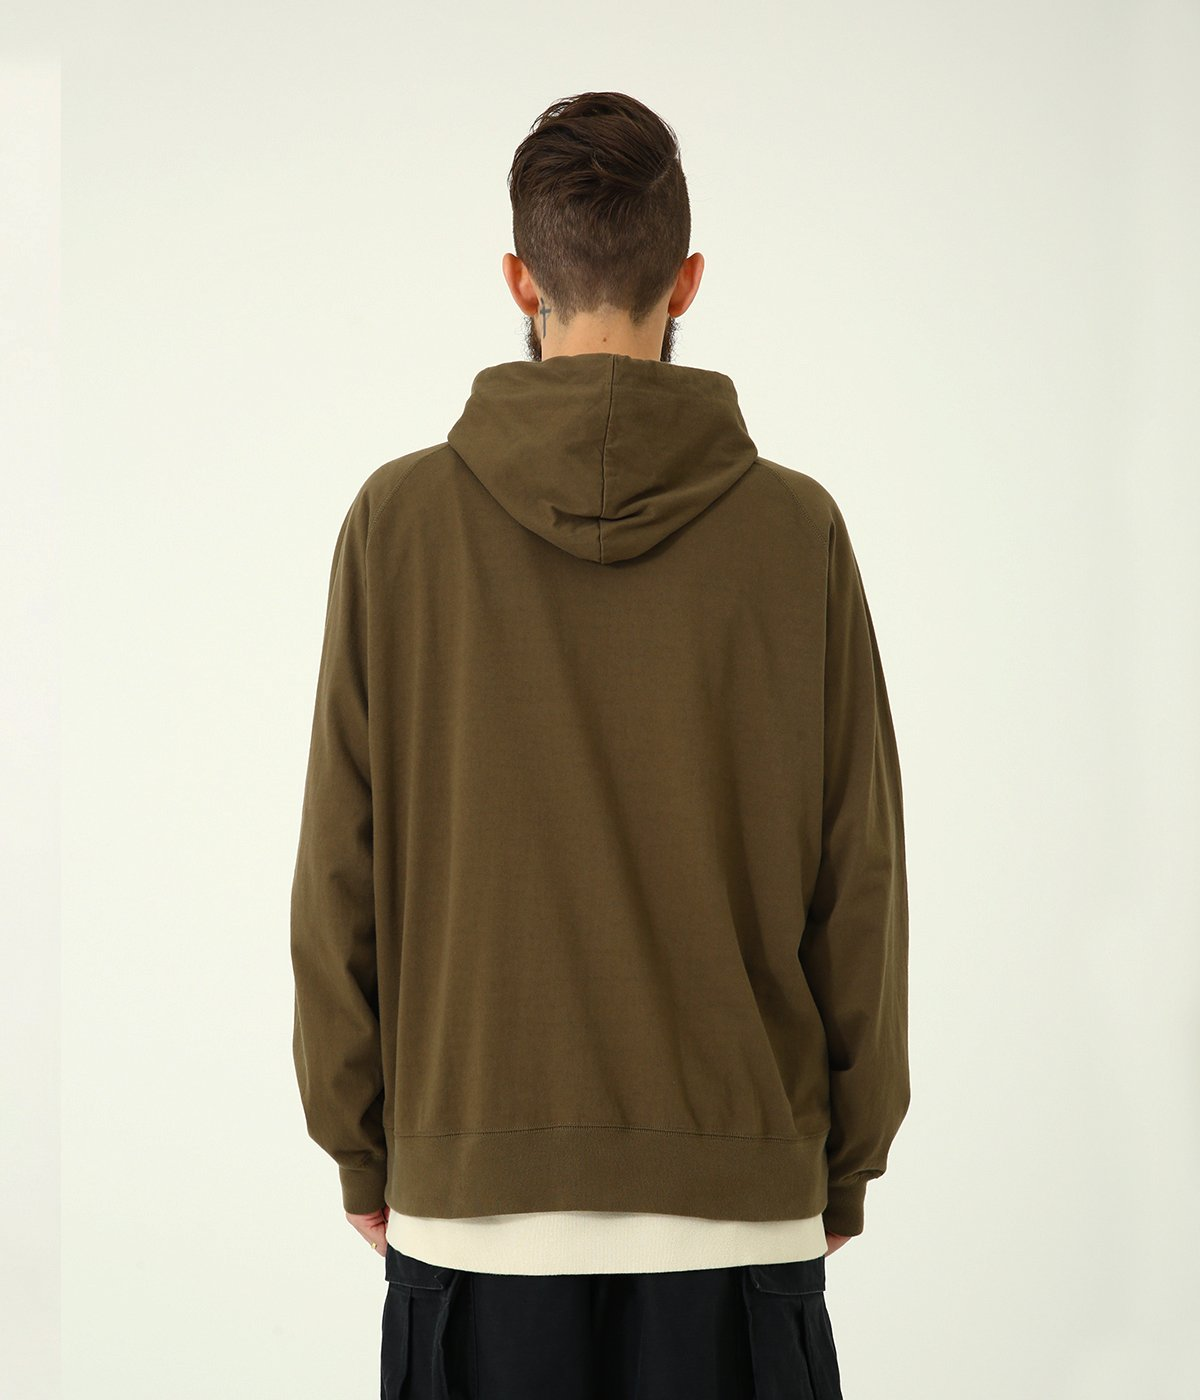 14/- HEAVY COTTON HOODED L/S T-SHIRT